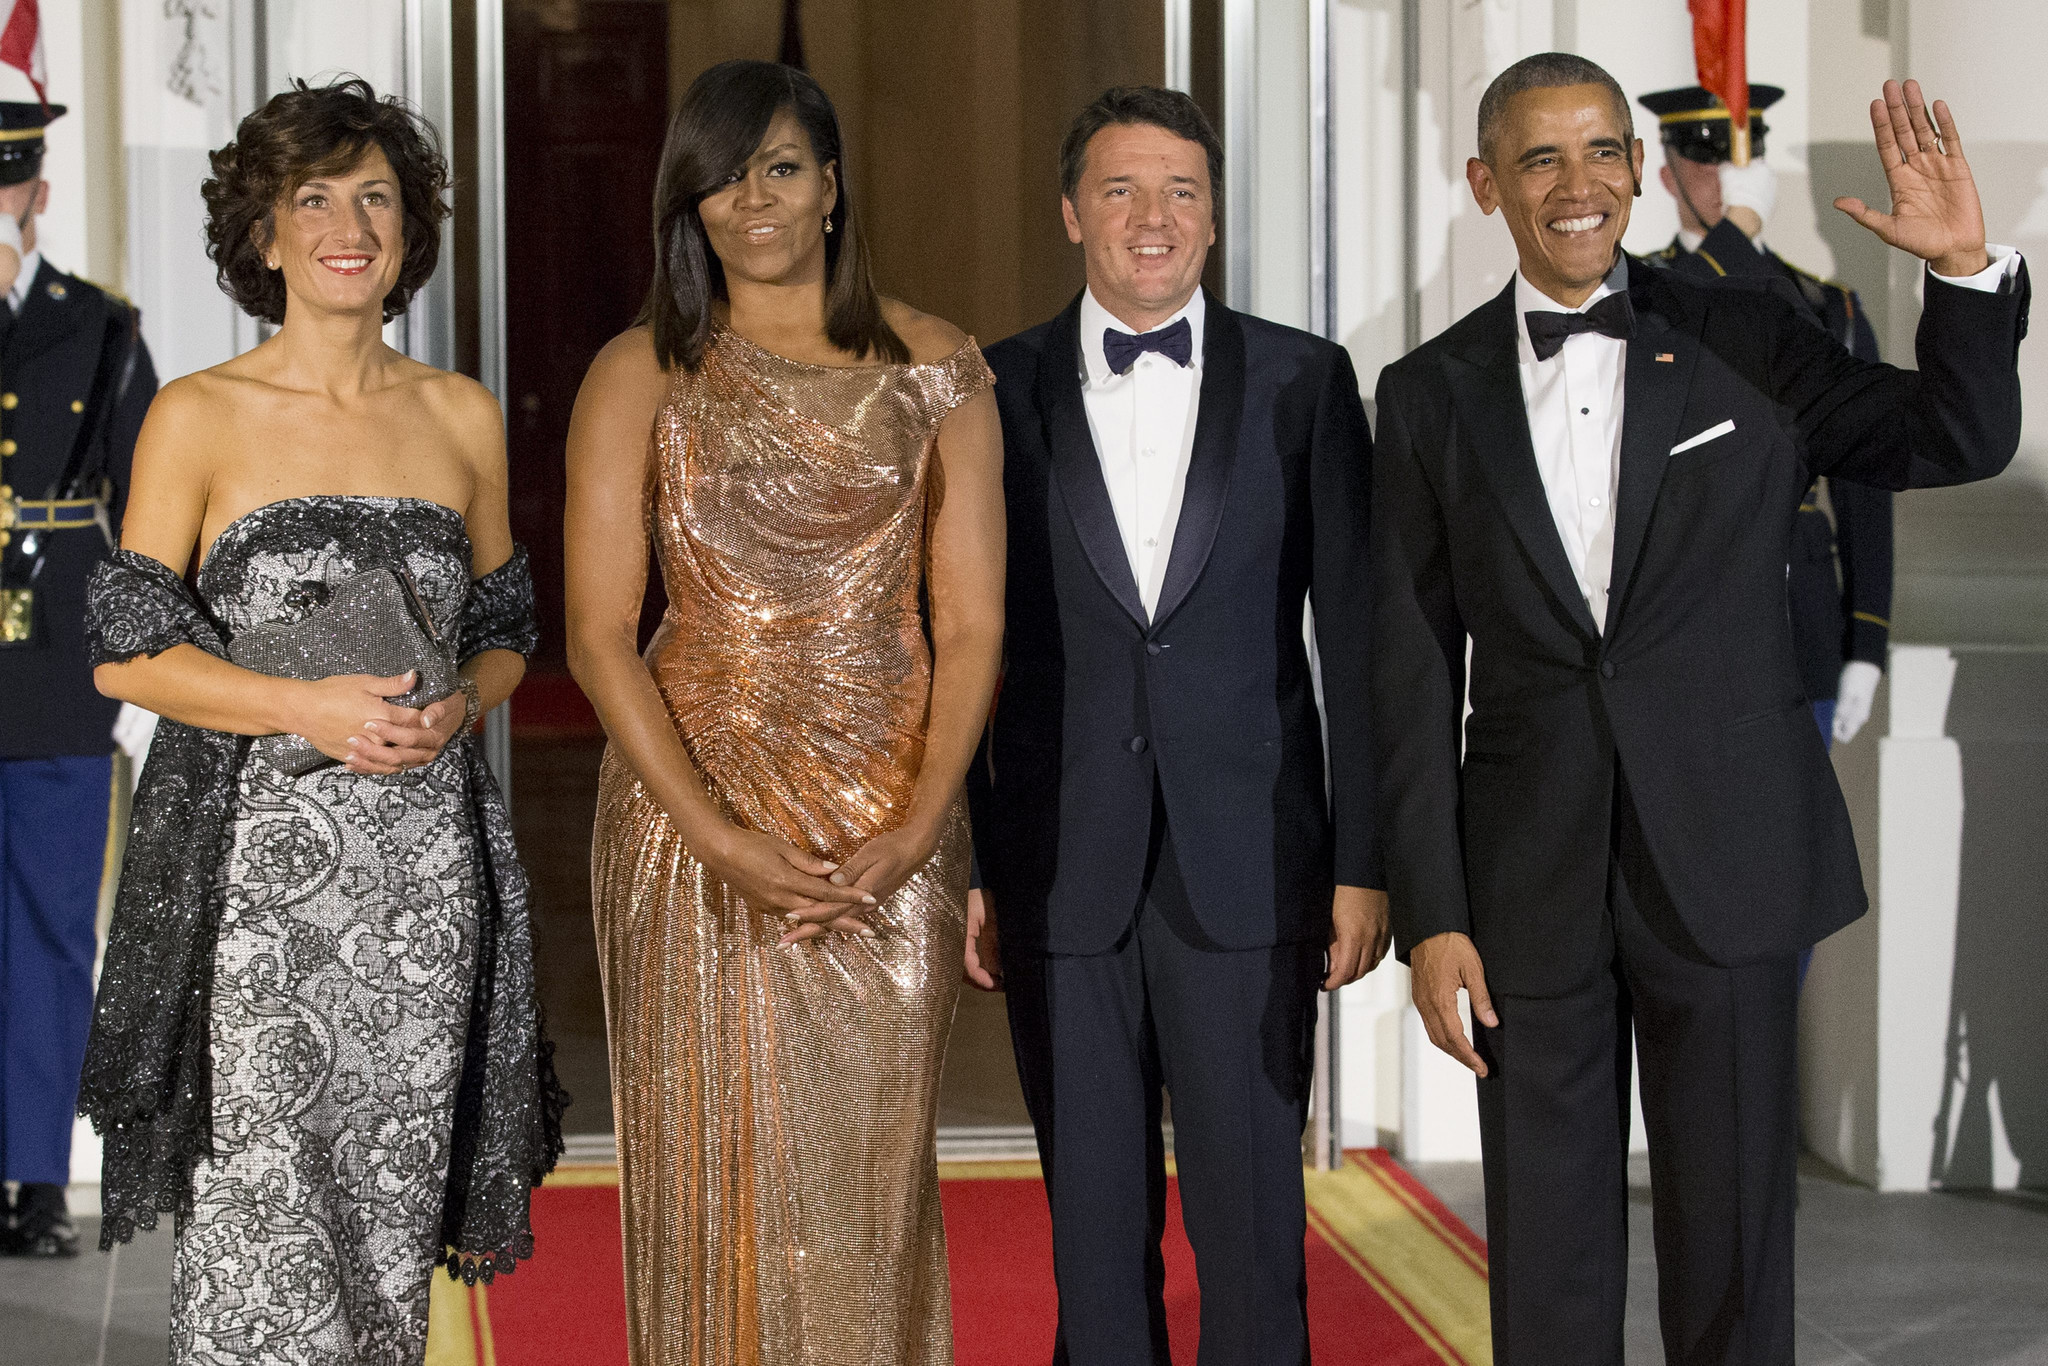 President obama honors italy in bittersweet final state dinner chicago tribune